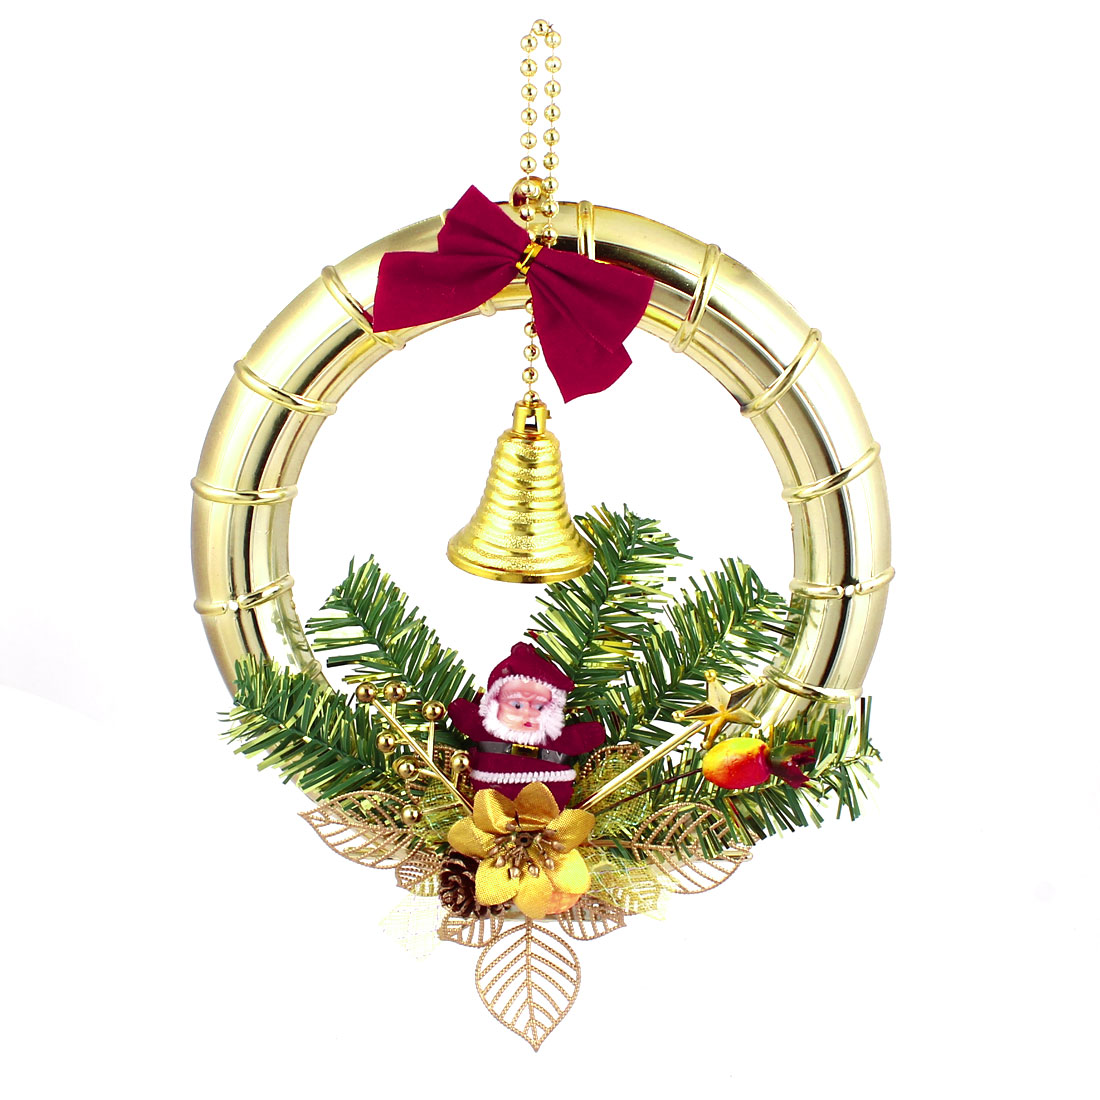 Xmas Trees Hanging Bowtie Santa Claus Metal Bell Accent Christmas Wreath Ring Gold Tone